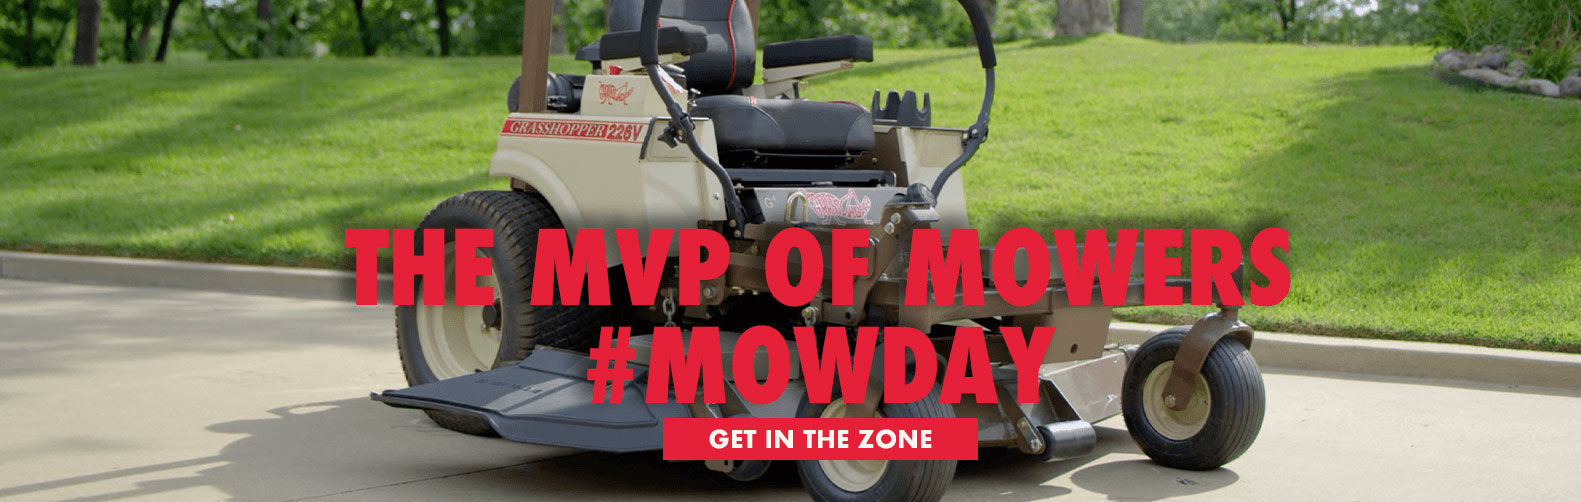 Mow Day July